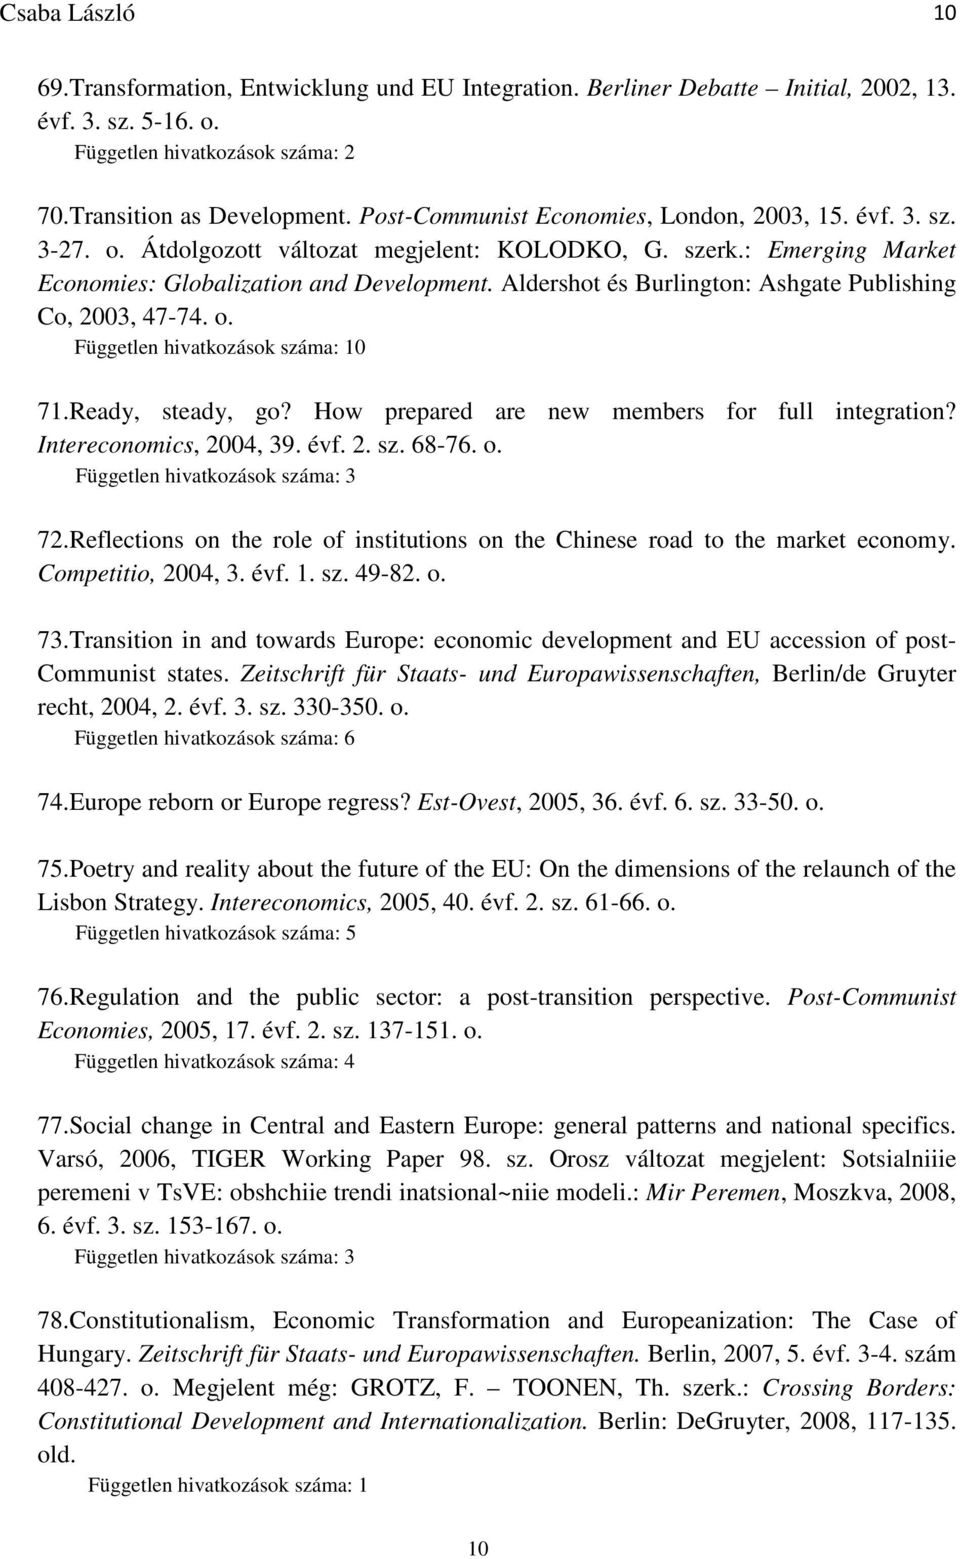 How prepared are new members for full integration? Intereconomics, 2004, 39. évf. 2. sz. 68-76. o. 72.Reflections on the role of institutions on the Chinese road to the market economy.